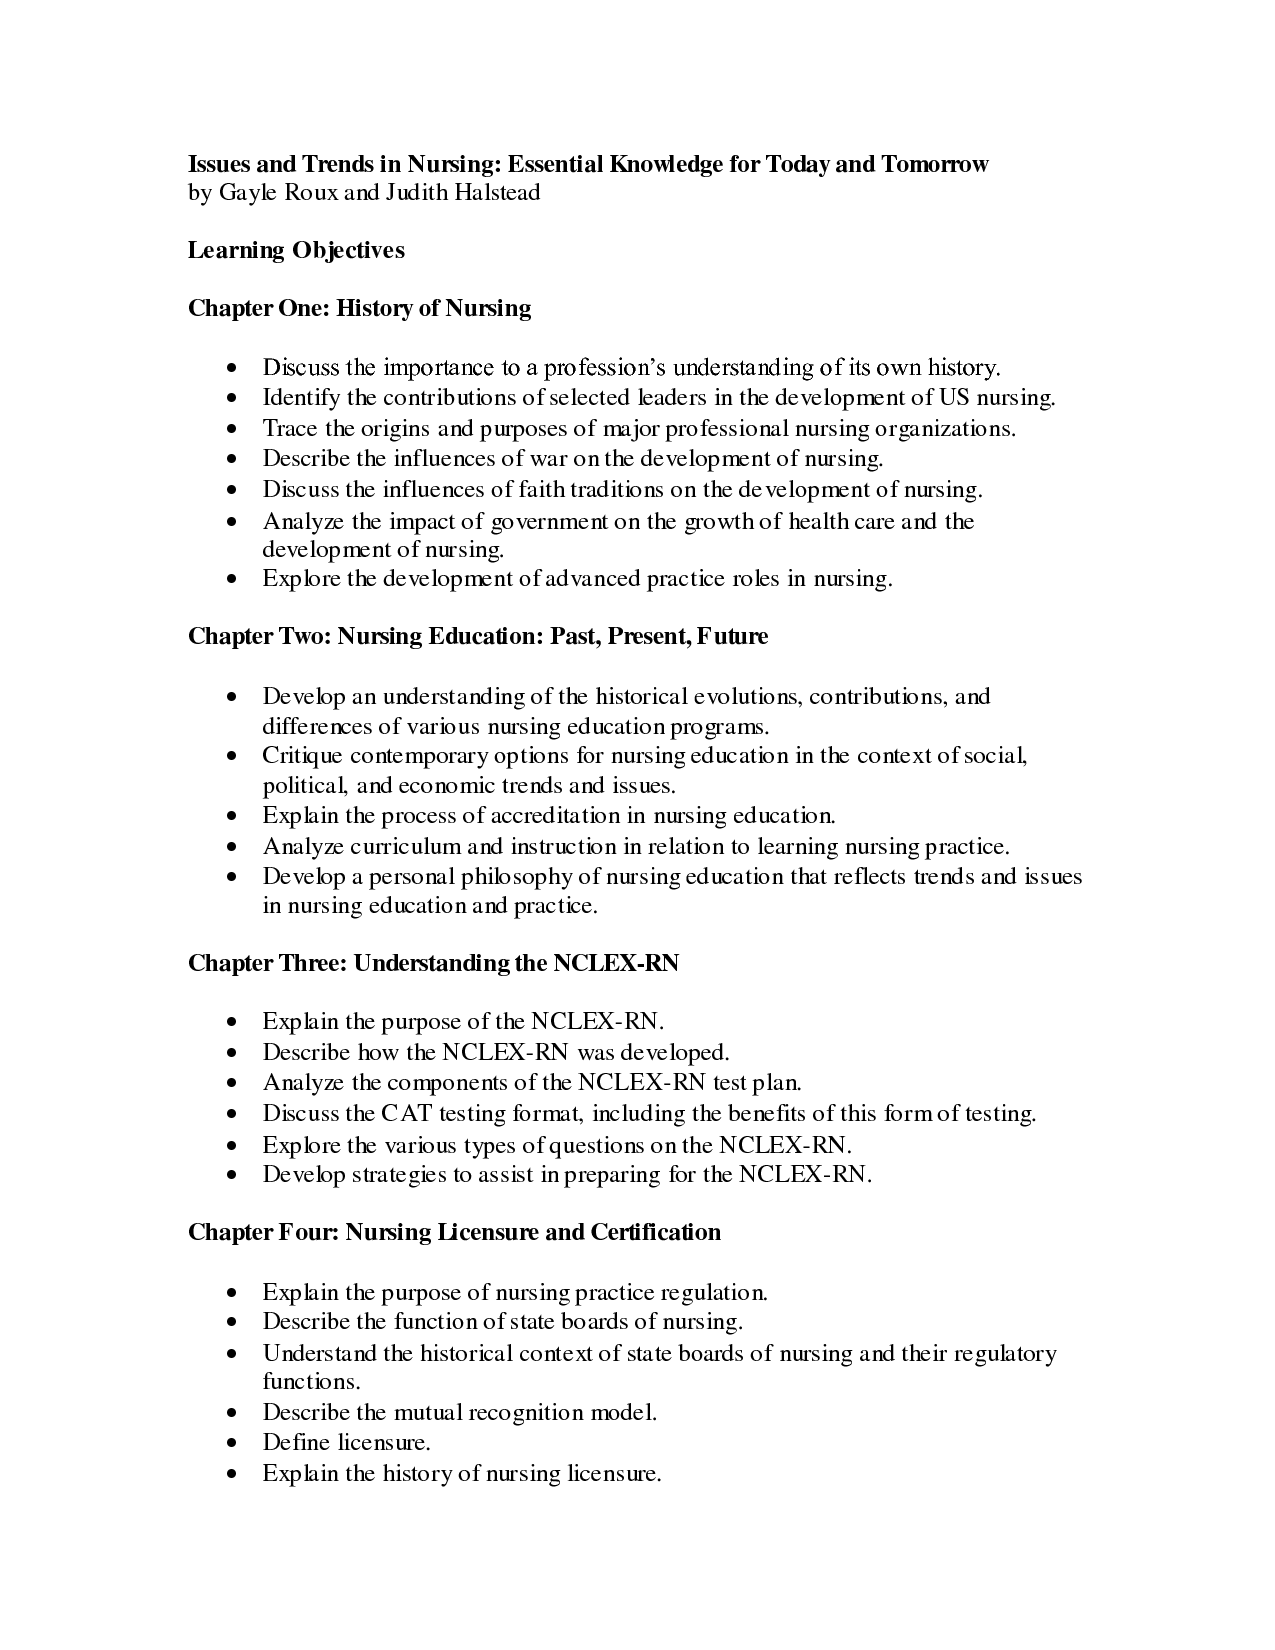 001 Research Paper Unusual Formatting Software In Chicago Style Format Apa Full